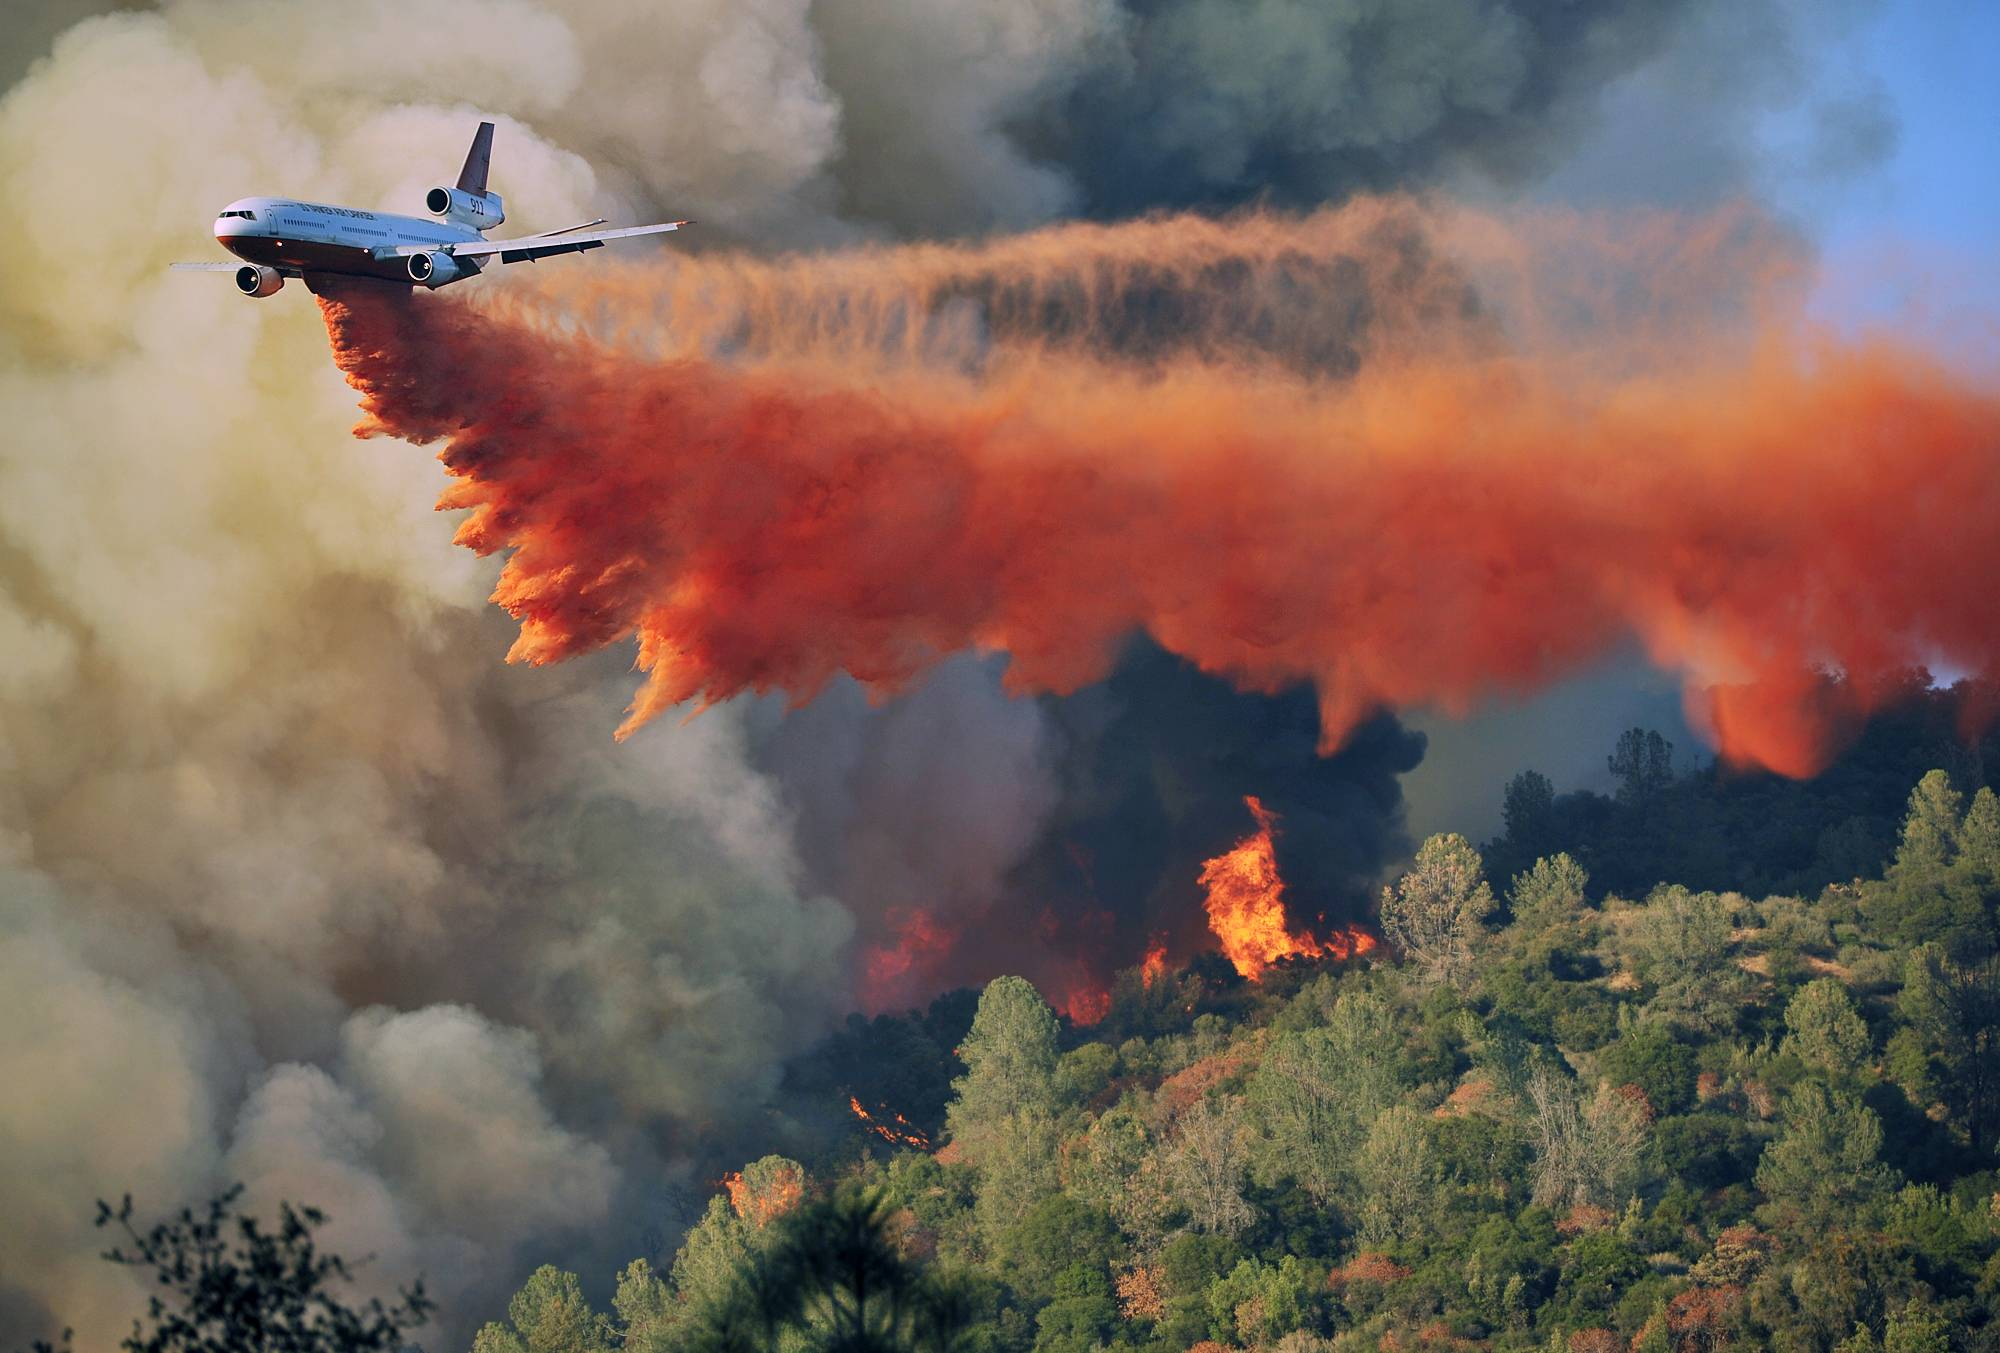 An air tanker drops fire retardent on a fire which was burning on a ridge northeast of Oakhurst, Calif., Monday. One of several wildfires burning across California prompted the evacuation of hundreds of people in a central California foothill community near Yosemite National Park, authorities said.